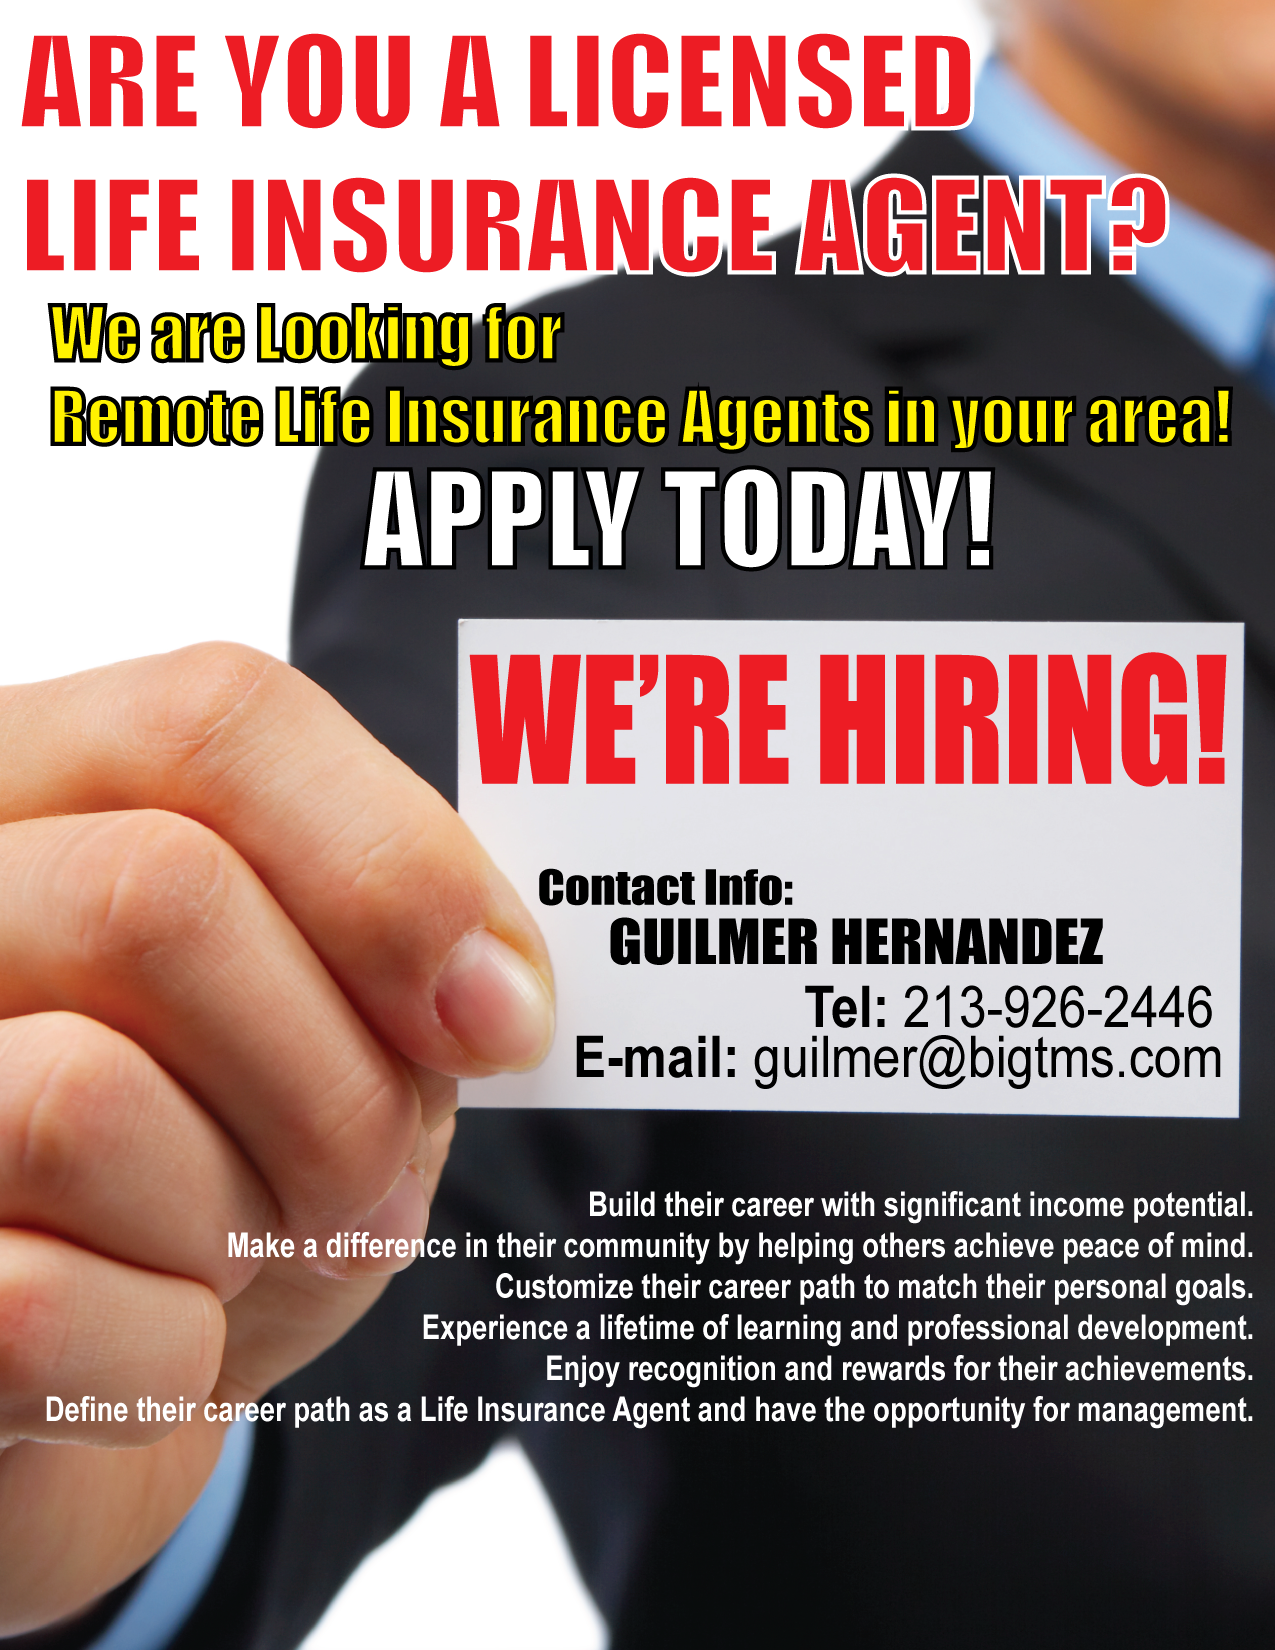 Ims Inc Is Looking For Remote Life Insurance Agents Statewide